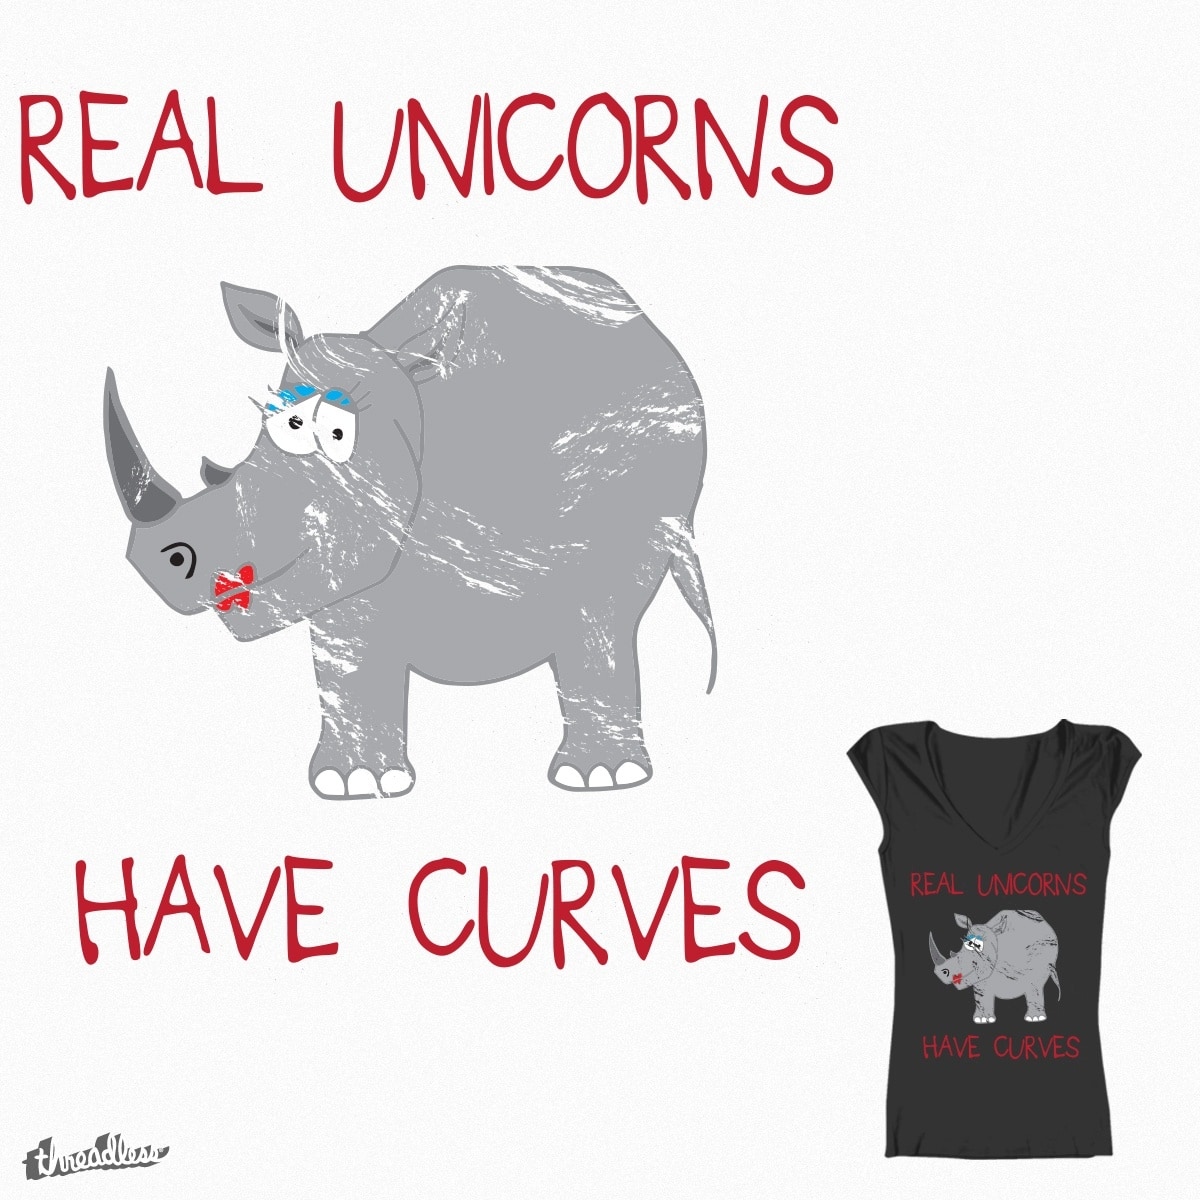 Real Unicorns have curves by Jamietaylor1985 on Threadless